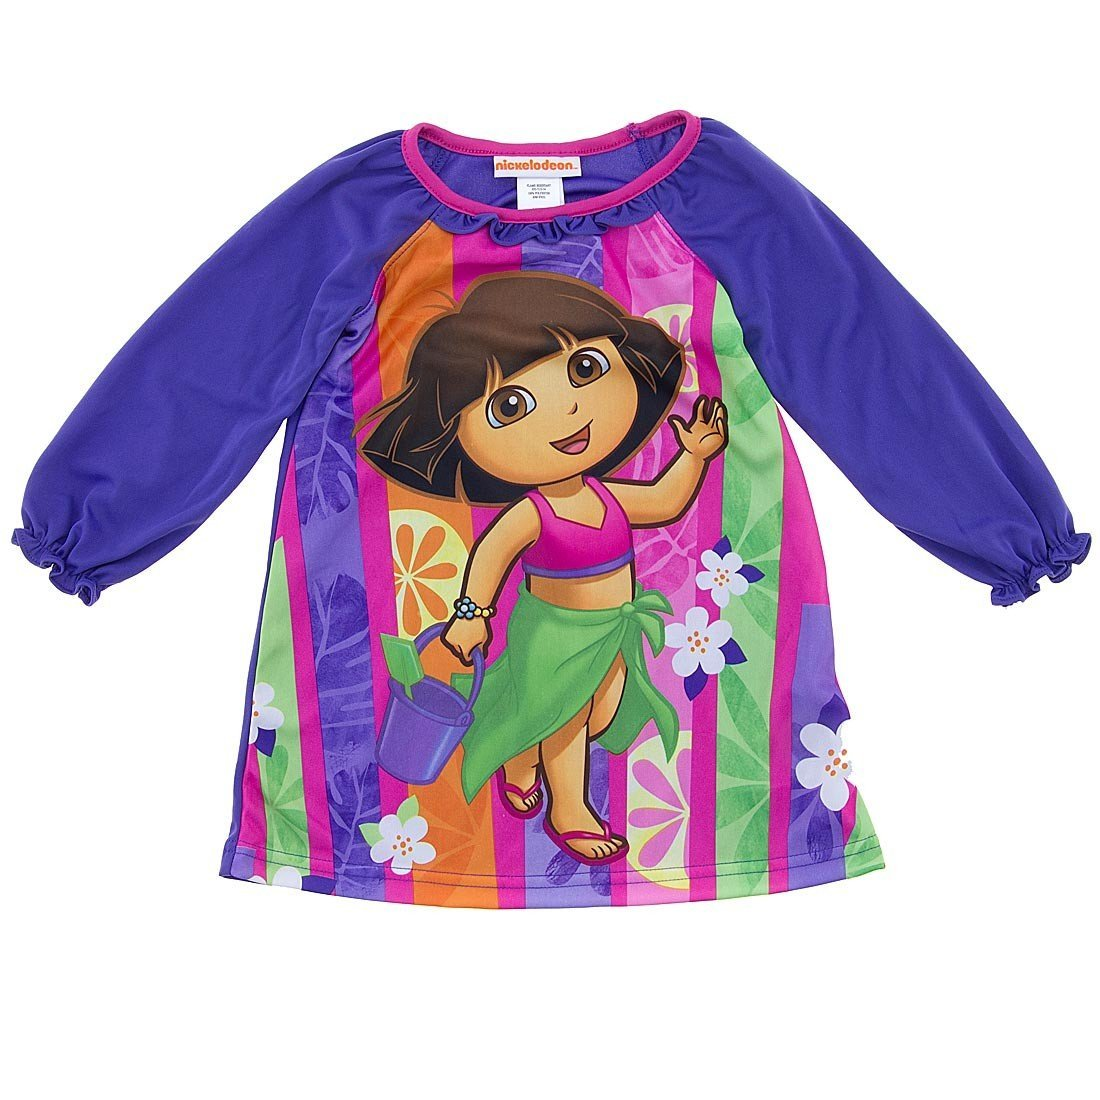 Dora the Explorer Nightgown for Little Girls'